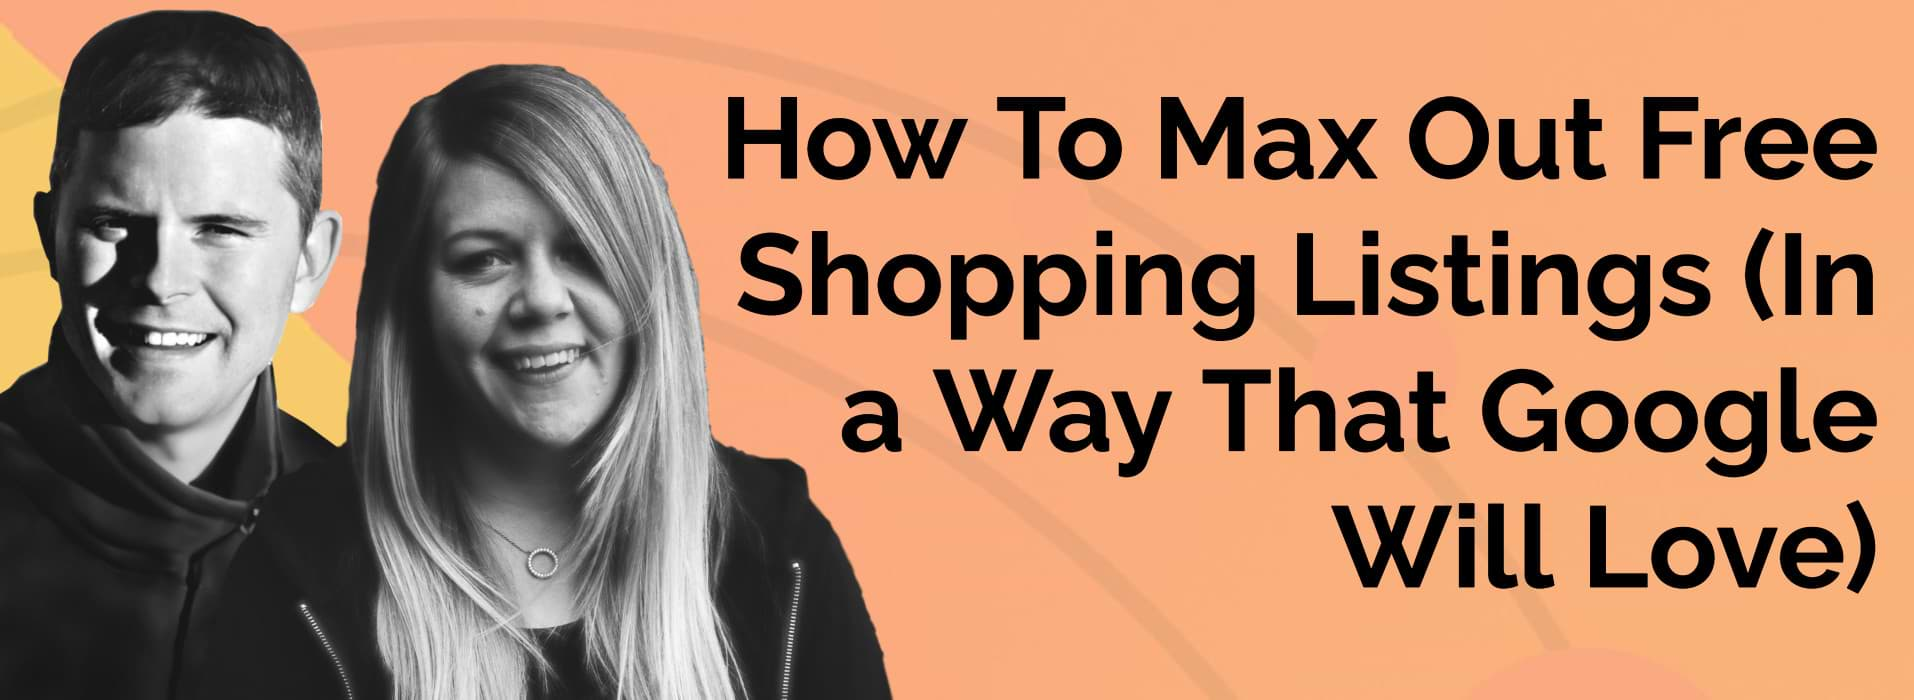 How To Max Out Free Shopping Listings (In a Way That Google Will Love)